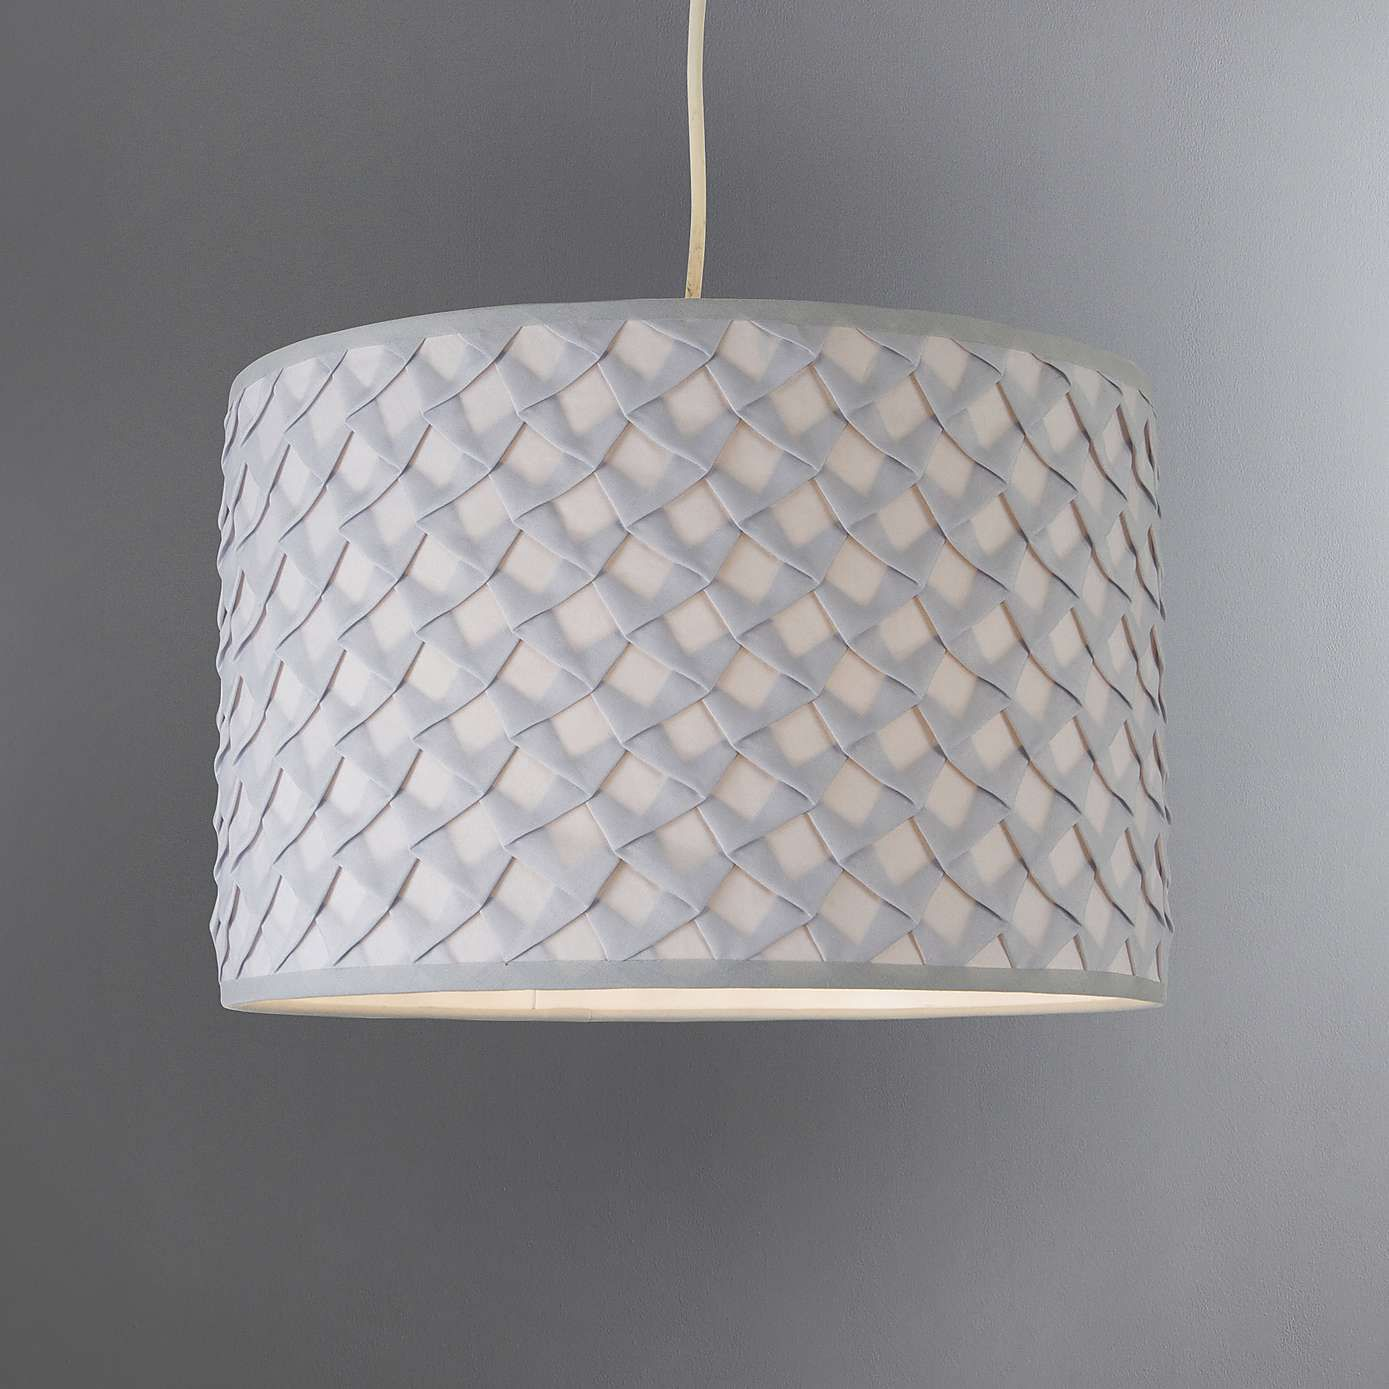 Dunelm Nancy Patterned Grey Fabric Ceiling Light Shade In